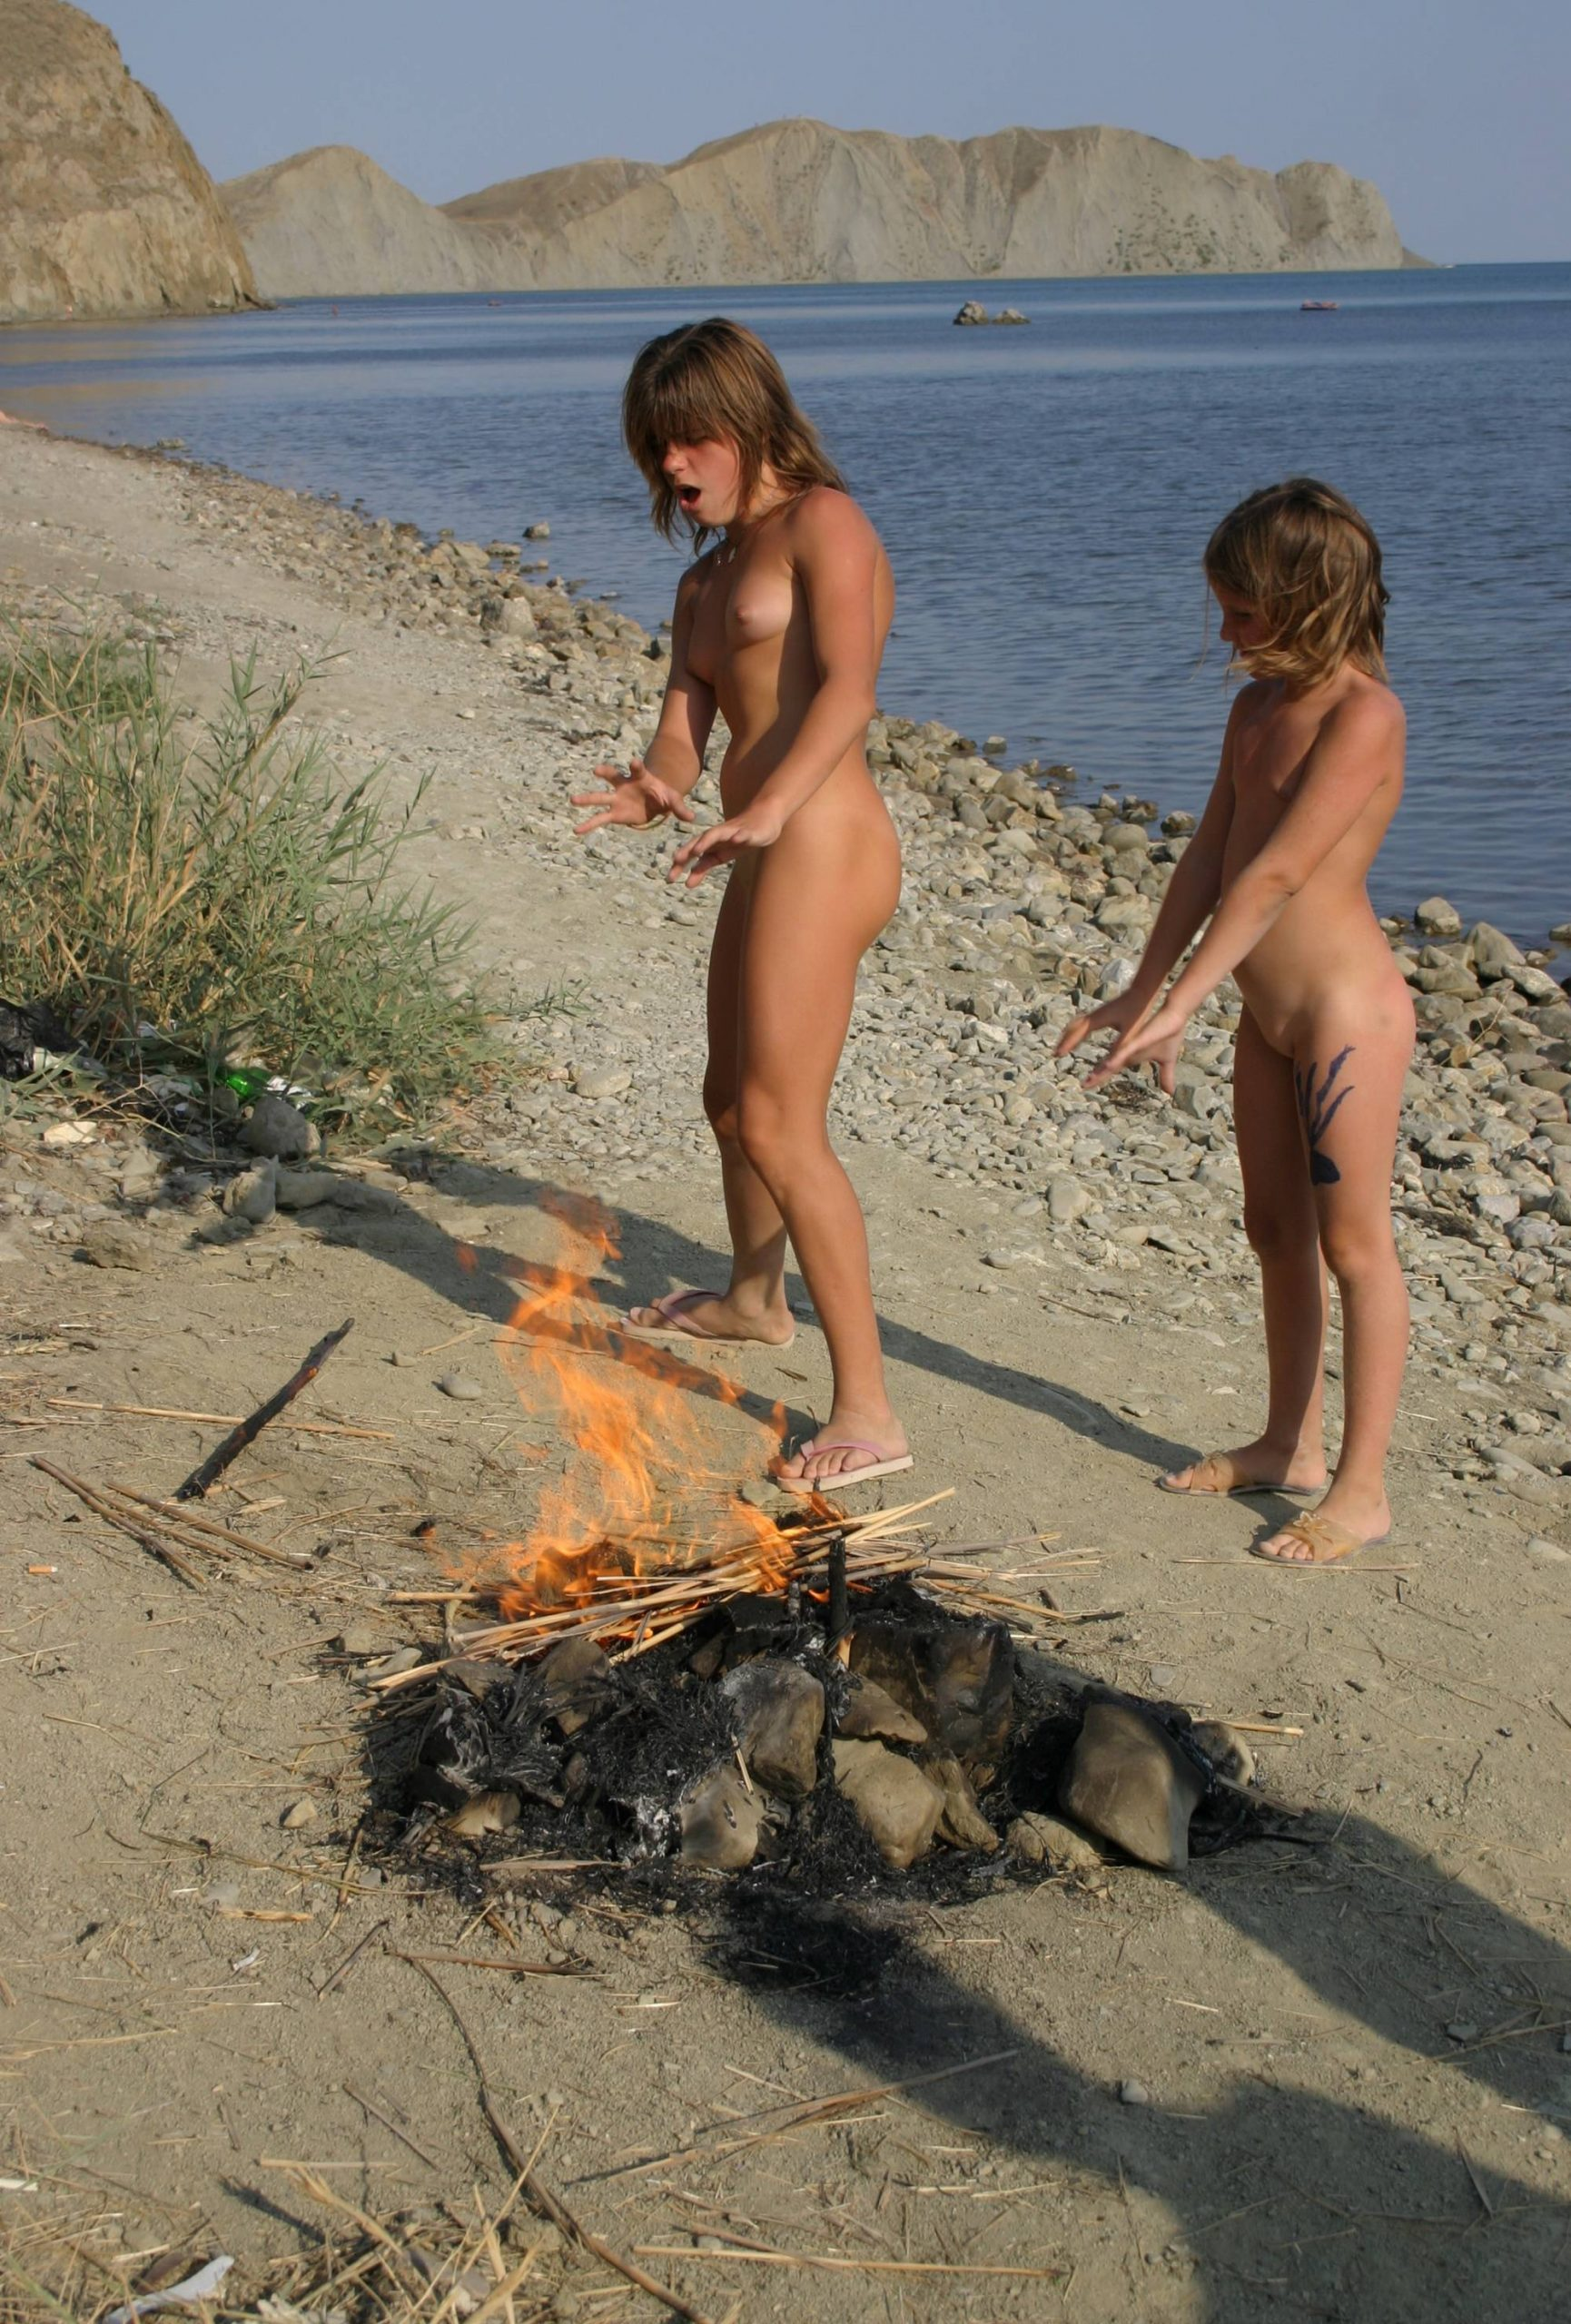 Pure Nudism Pics-Beachfront Fire Jumping - 3